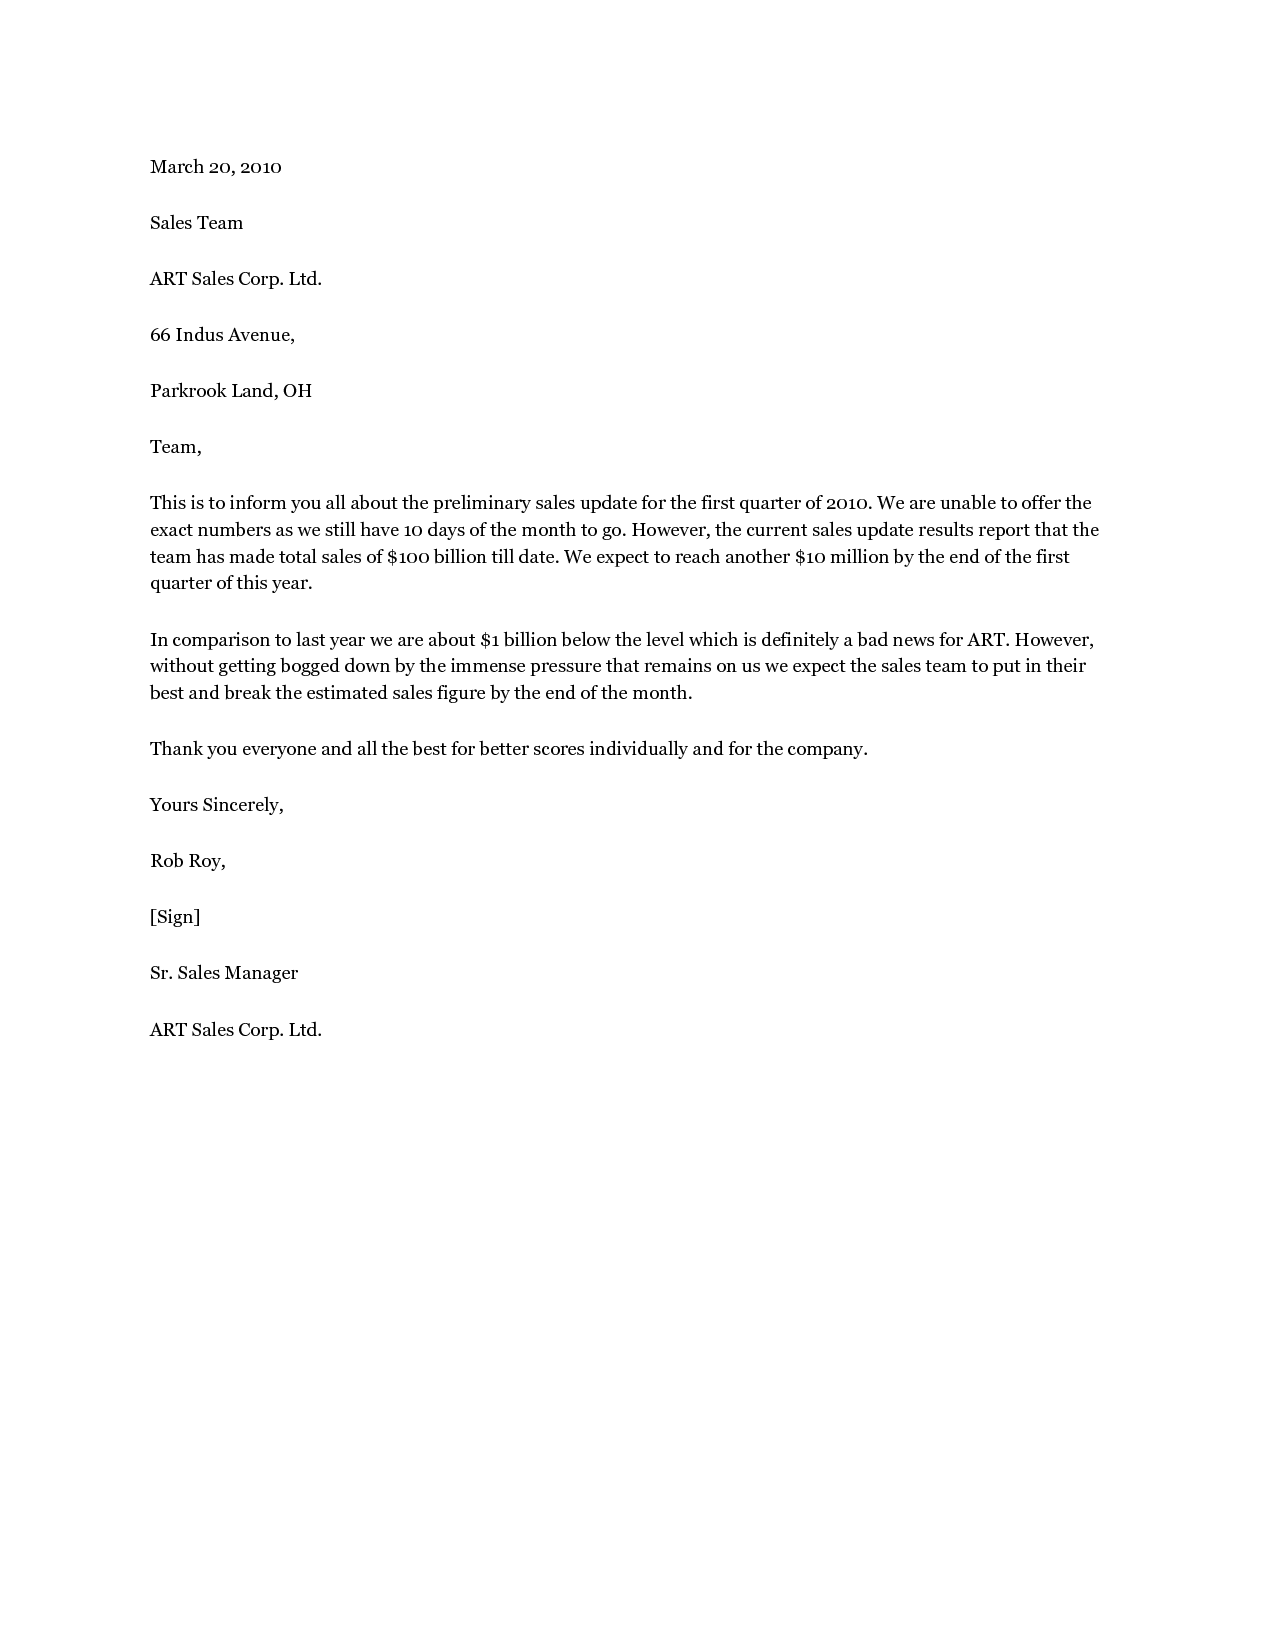 Sales Update Letter Sales Personal Letters helps you find the – Sample Sales Letter Template